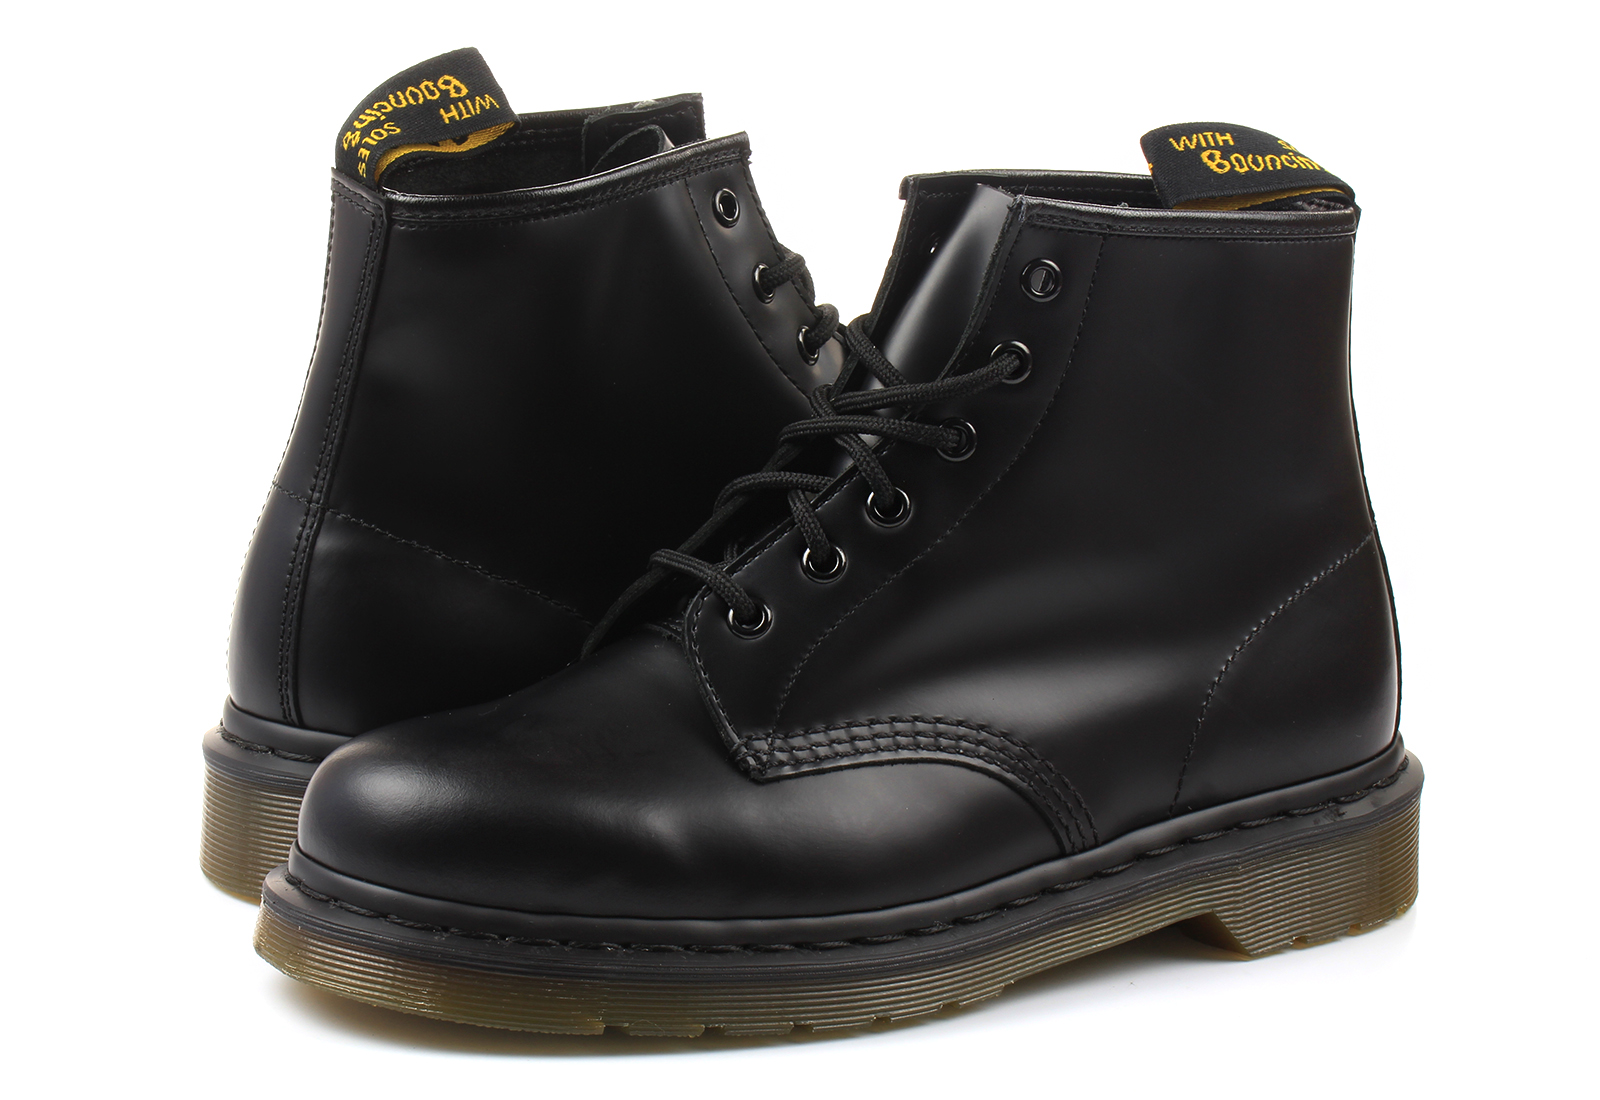 dr martens boots 101 6 eye boot dm10064001 online shop for sneakers shoes and boots. Black Bedroom Furniture Sets. Home Design Ideas